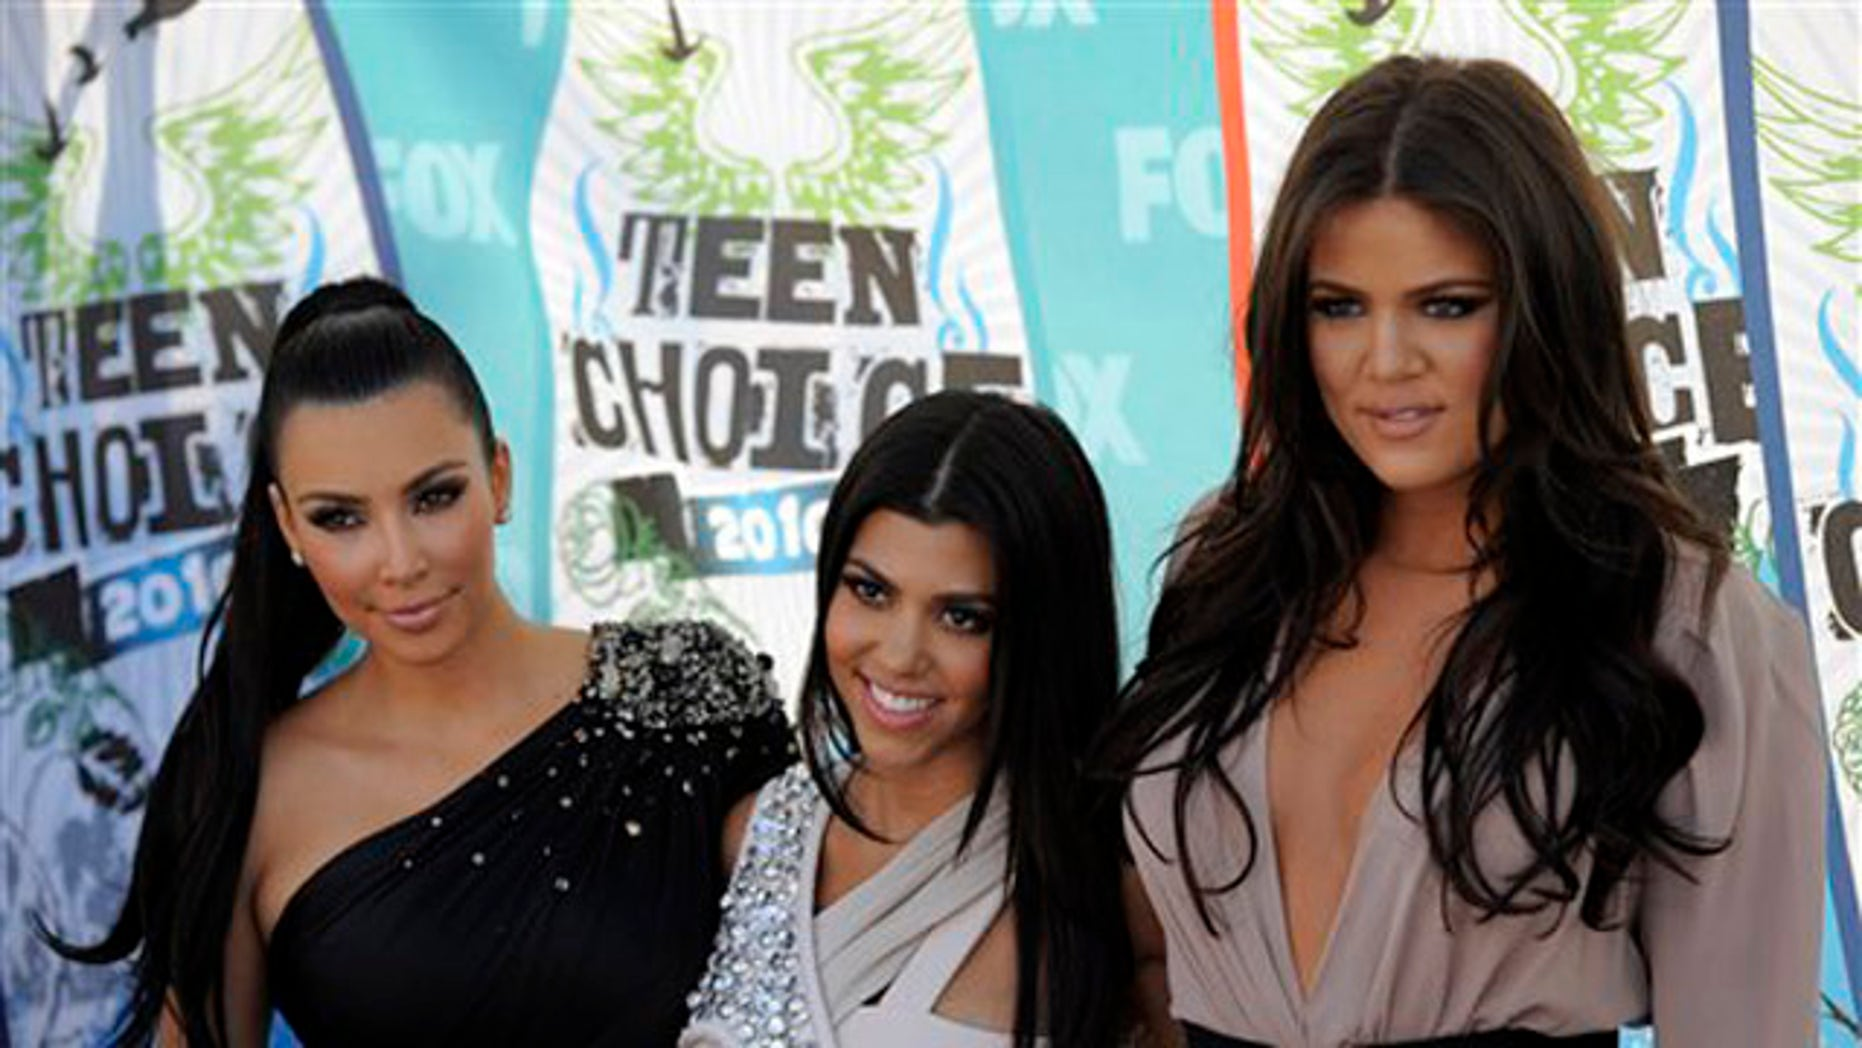 Aug. 8, 2010: From left, Kim Kardashian, Kourtney Kardashian and Khloe Kardashian arrive at the Teen Choice Awards in Universal City, Calif.